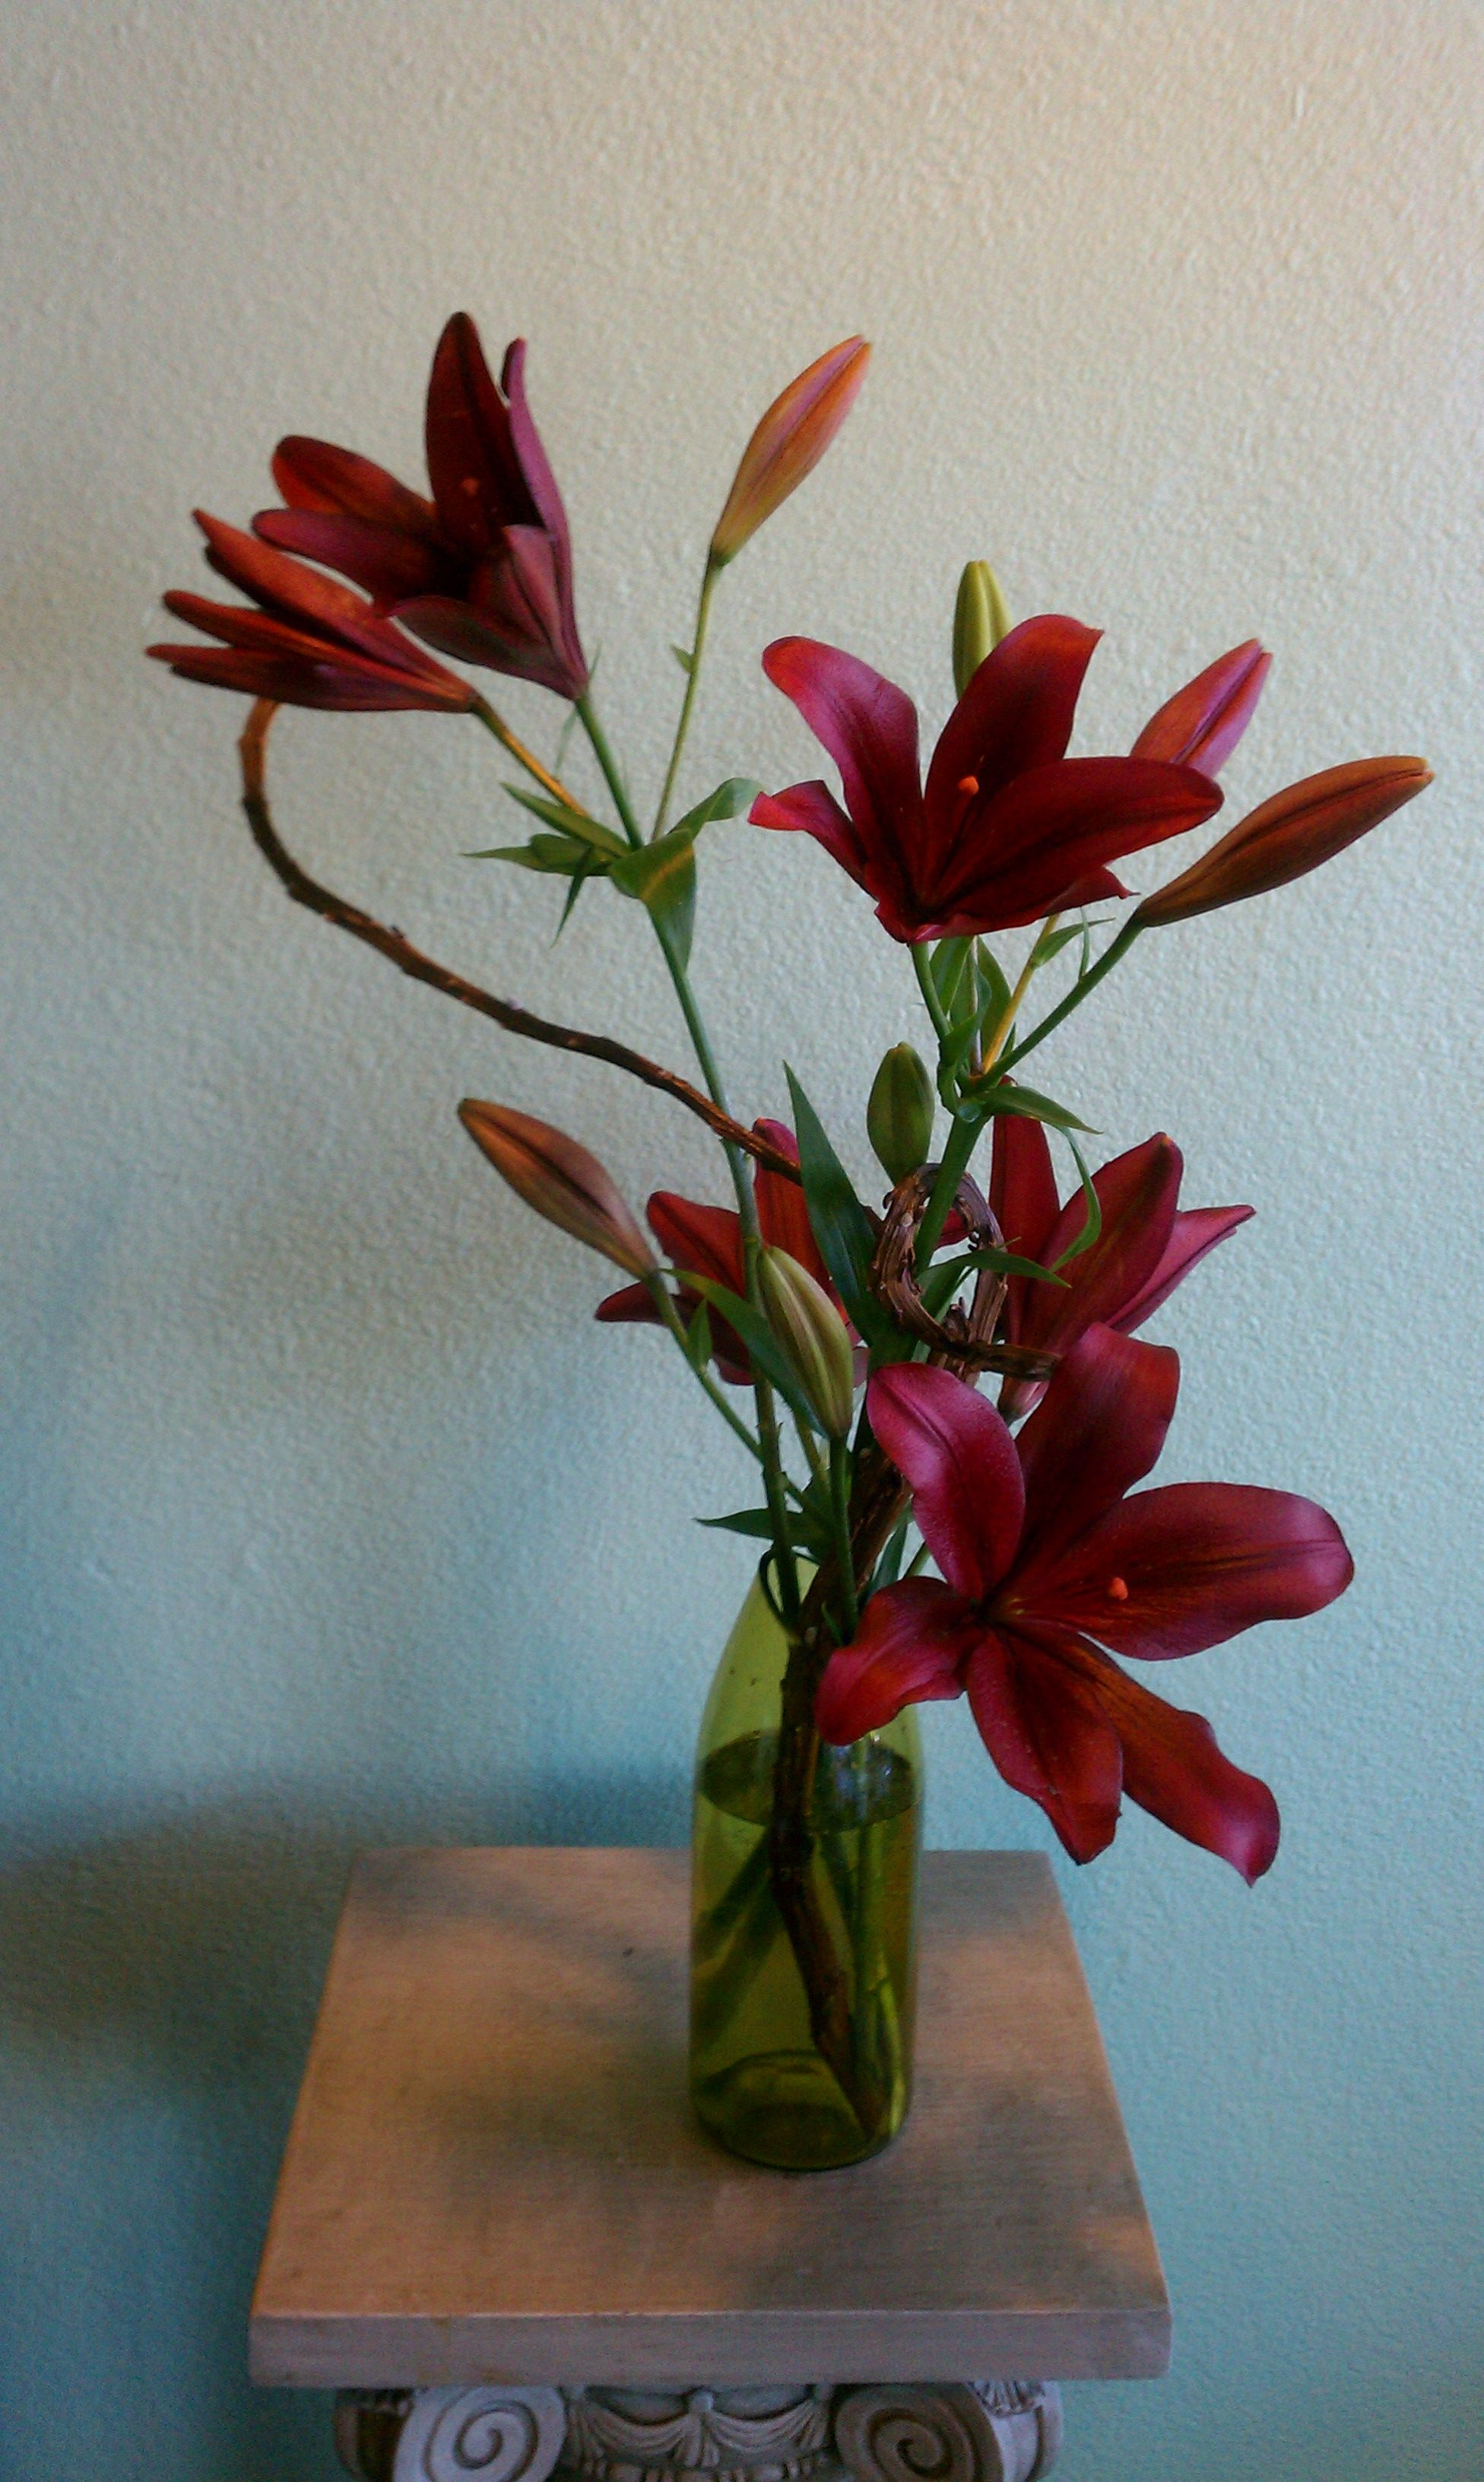 Burgundy Lilies With Fan Tail Pussy Willow In Green Wine Bottle Vase